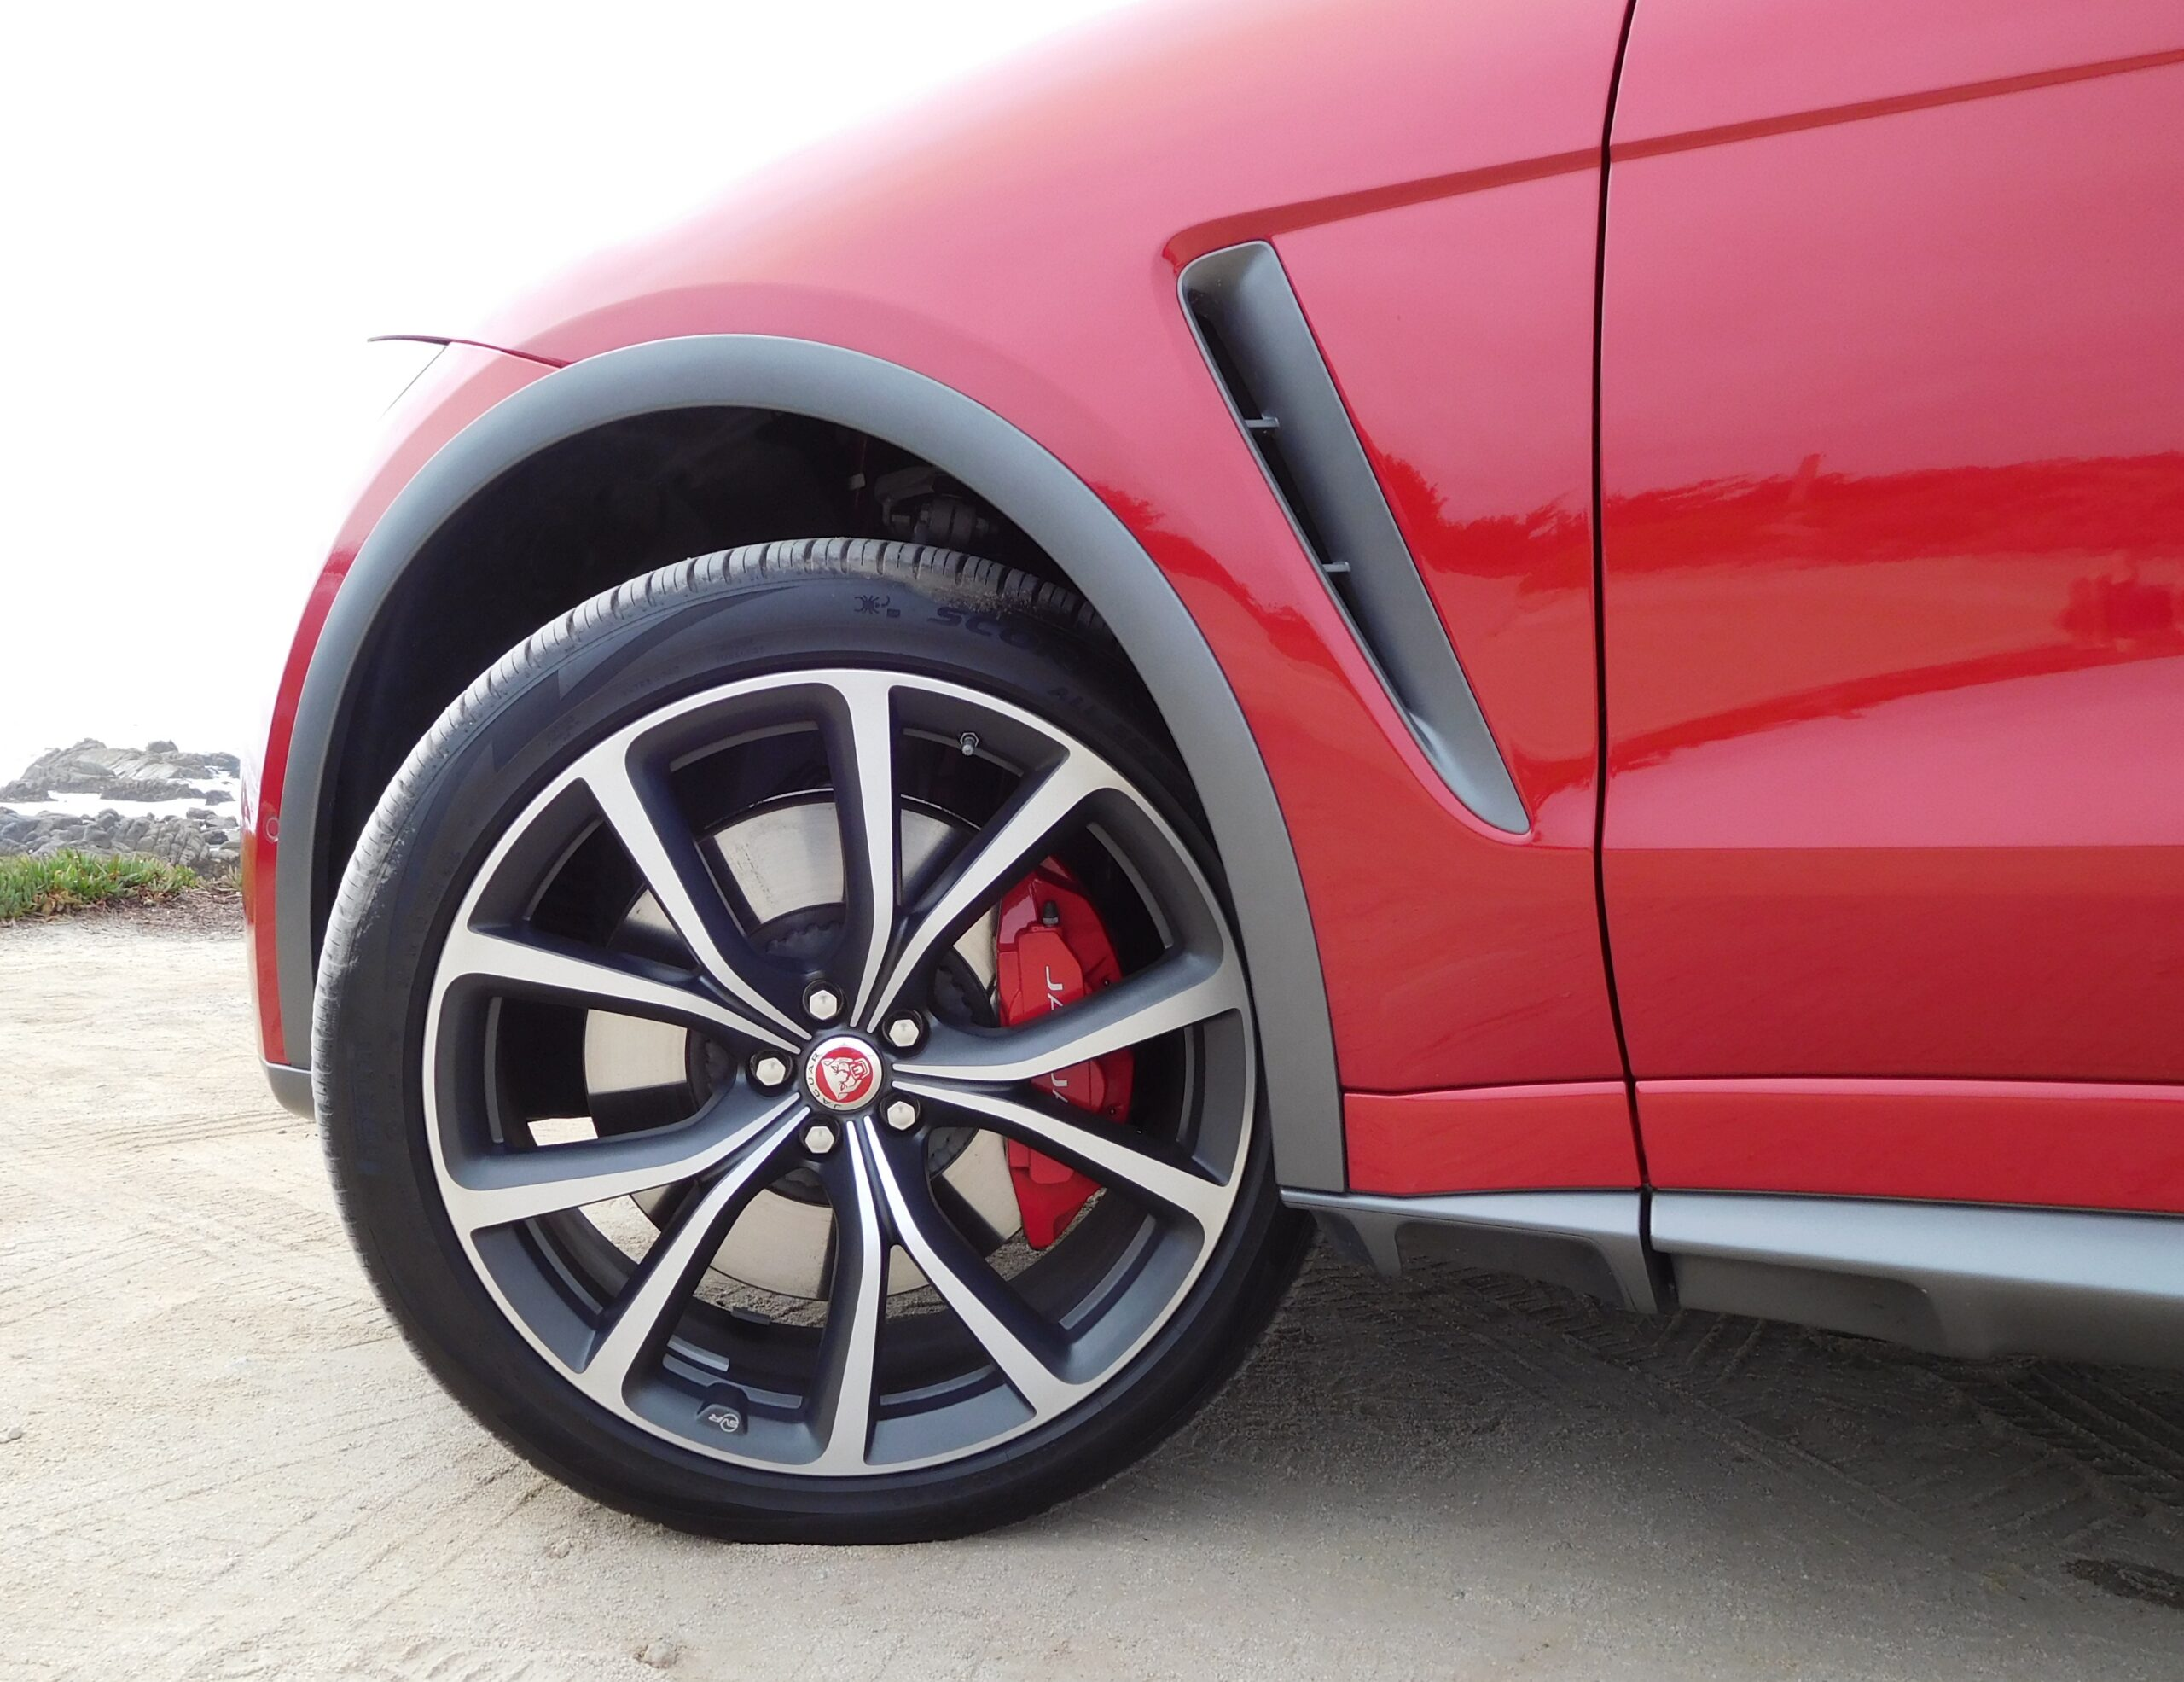 The high-performance tires on the F-Pace SVR